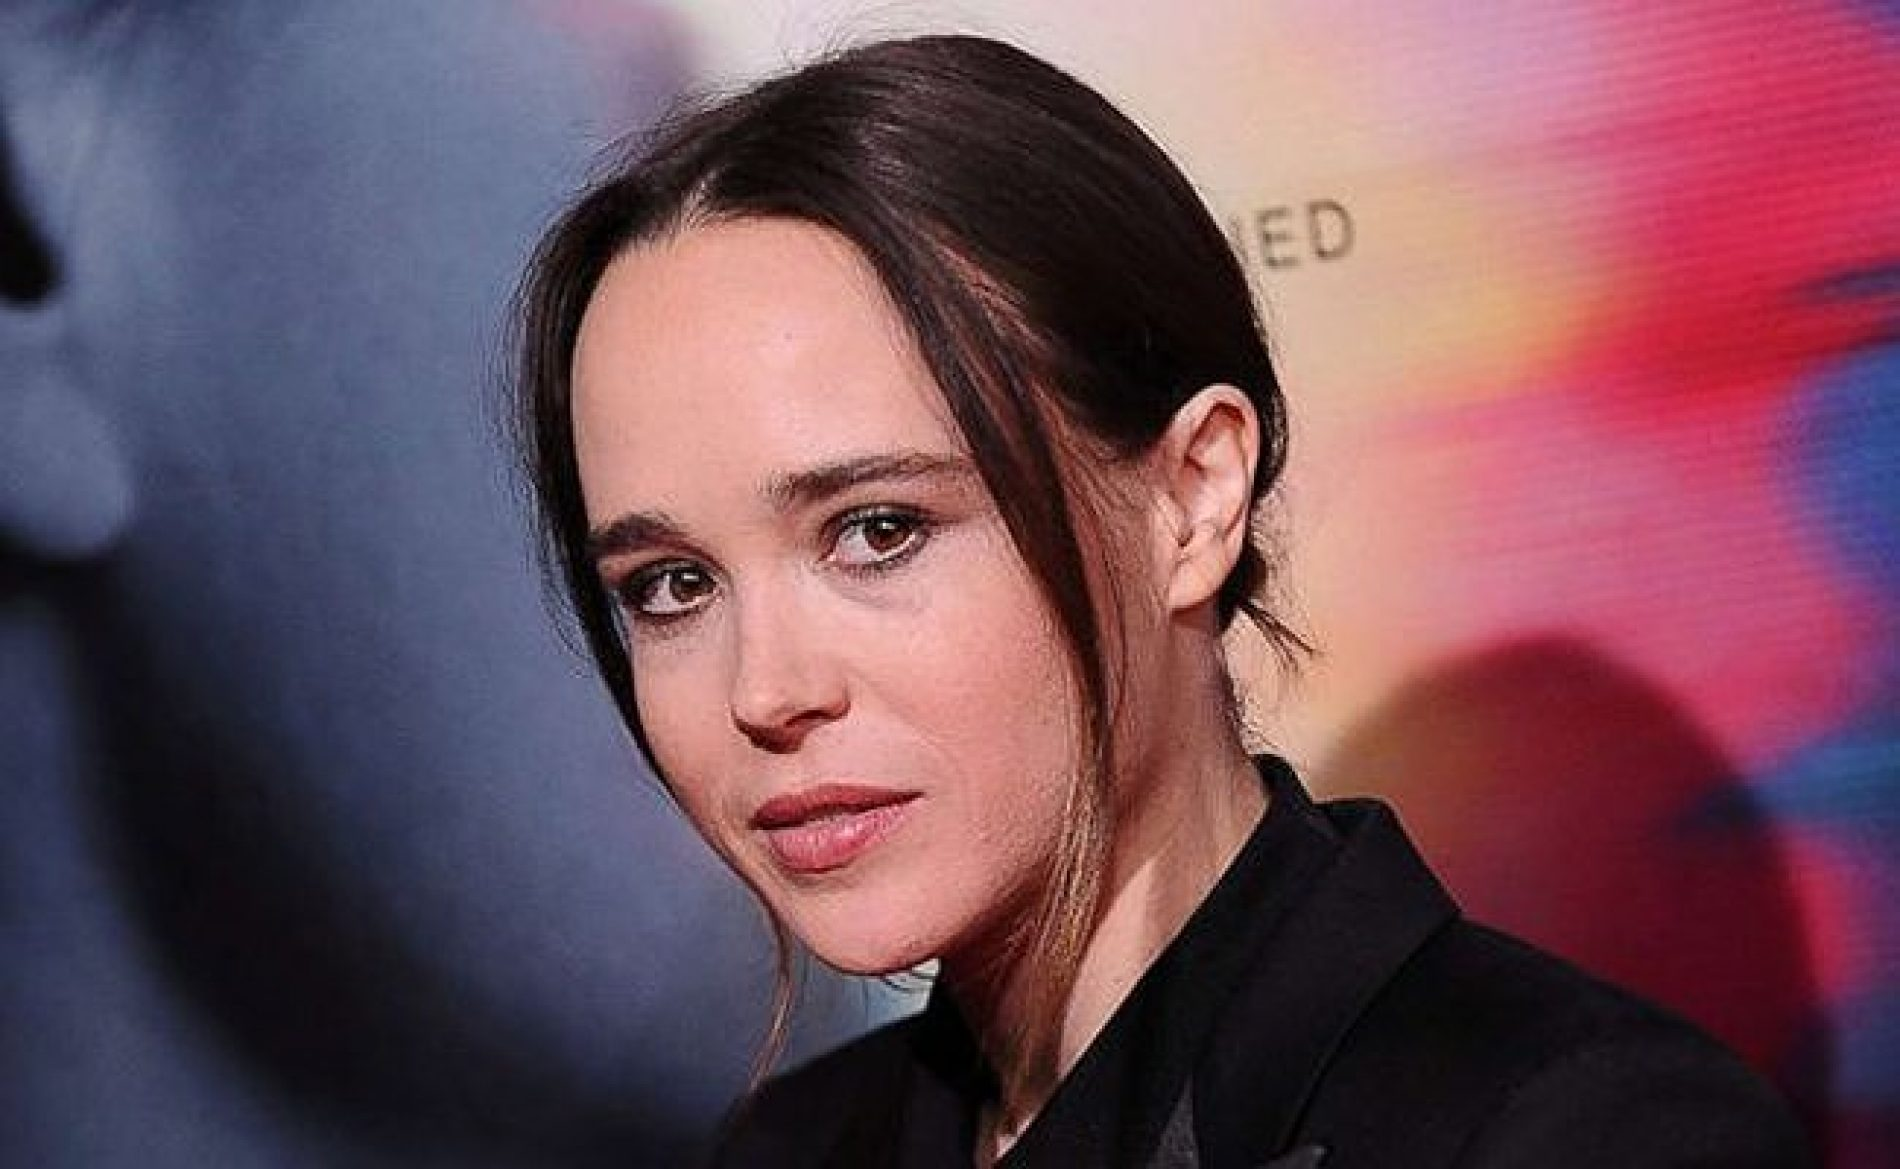 Ellen Page Says No One Should Ever Be Outed Unless They're Actively Participating In Destructive And Dangerous Policies